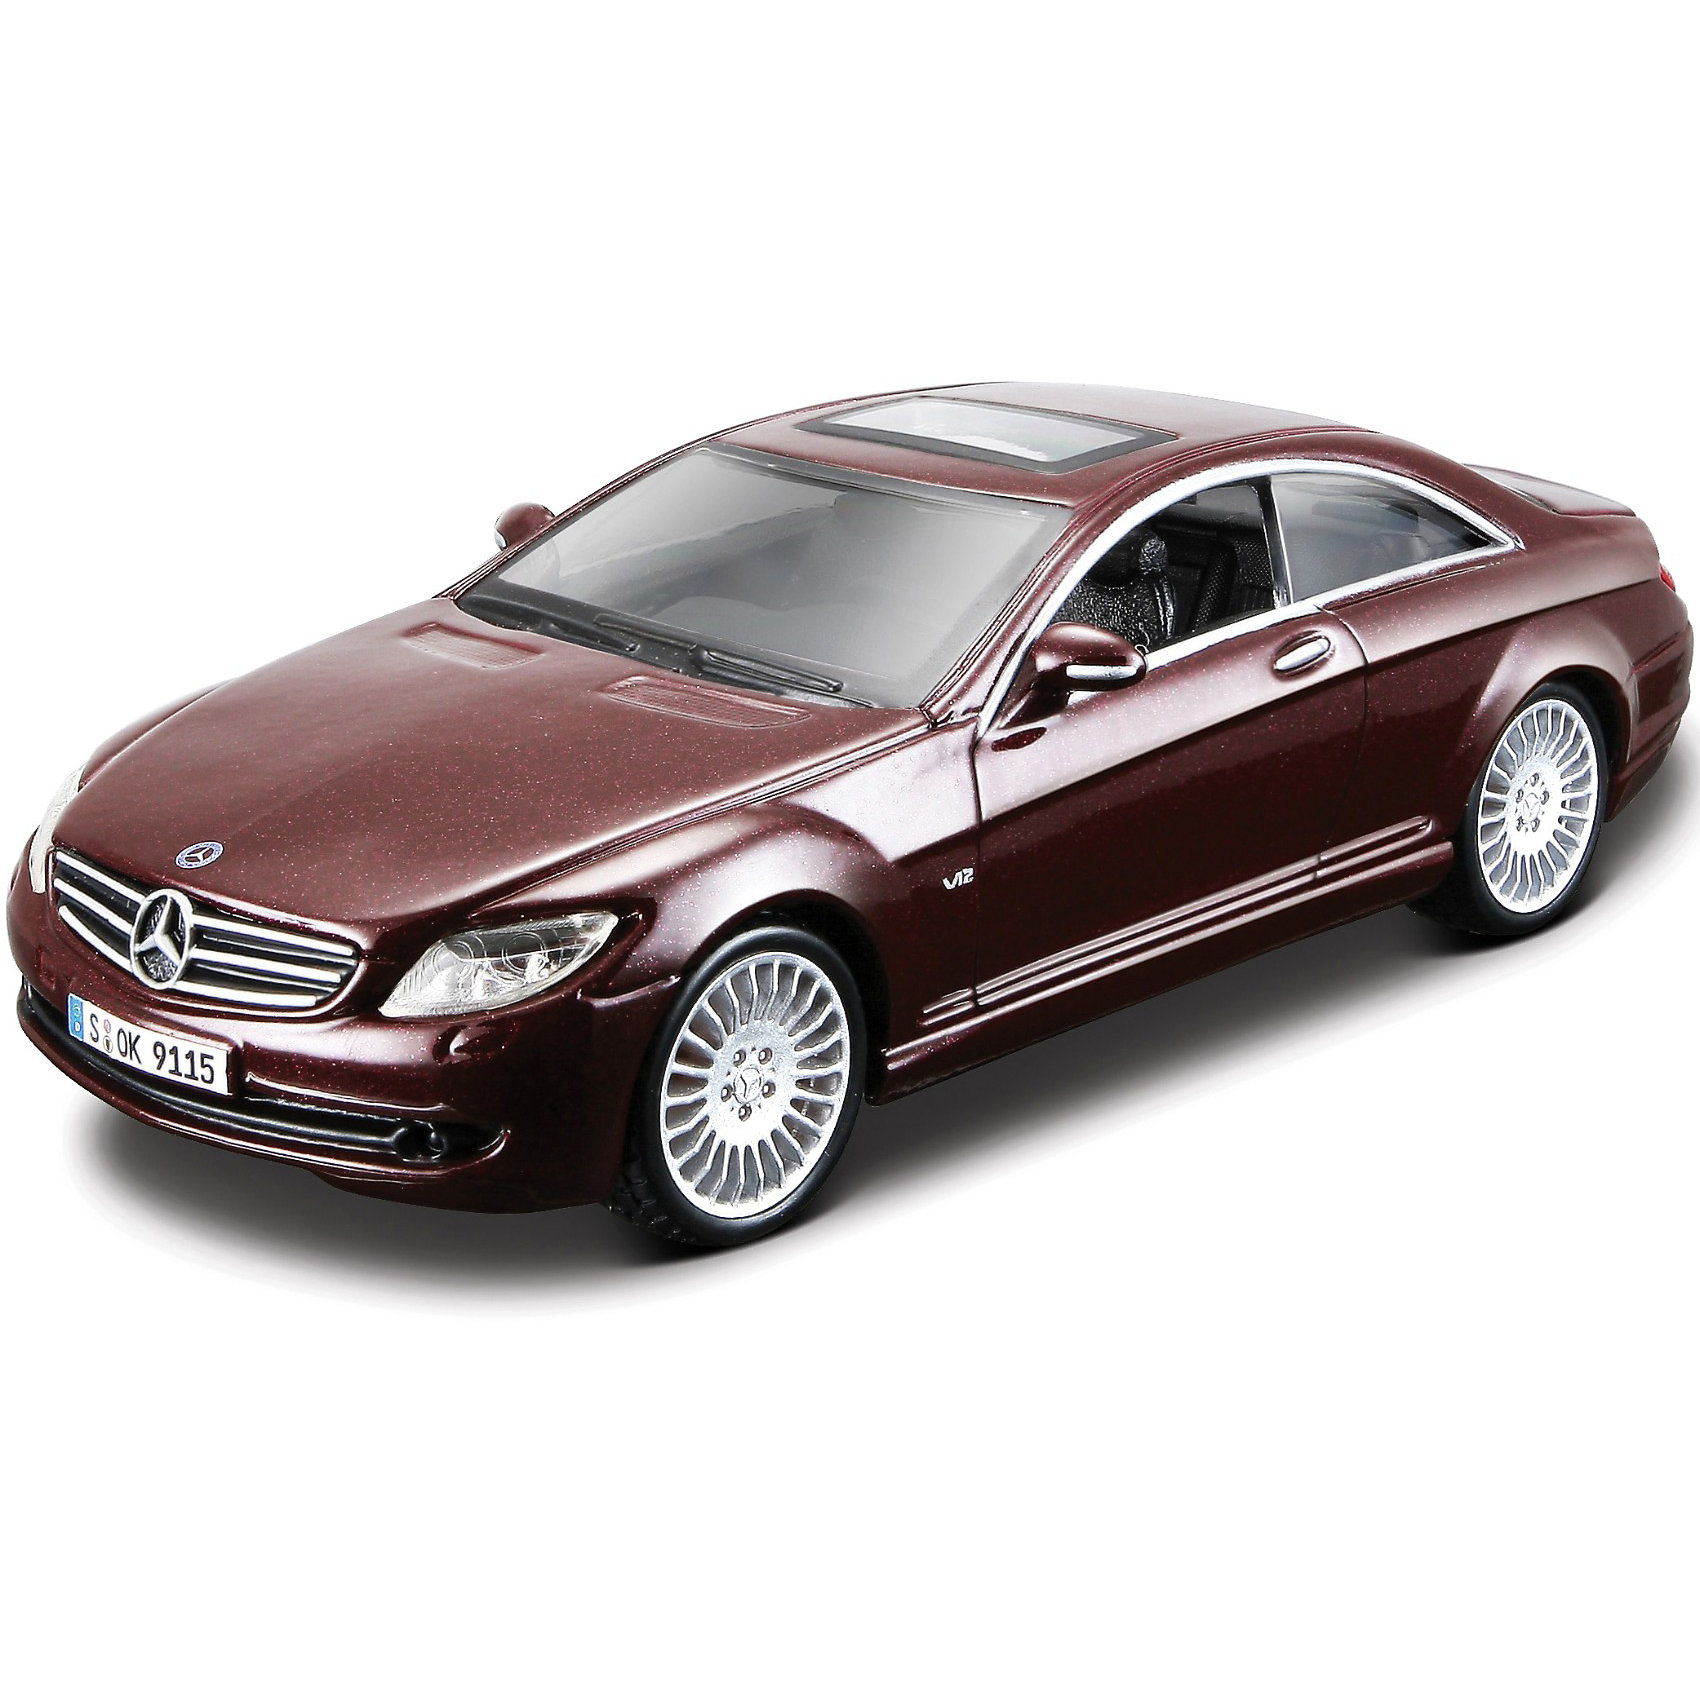 купить Bburago Машина  MERCEDES-BENZ CL550 металл., сборка, 1:32, Bburago недорого